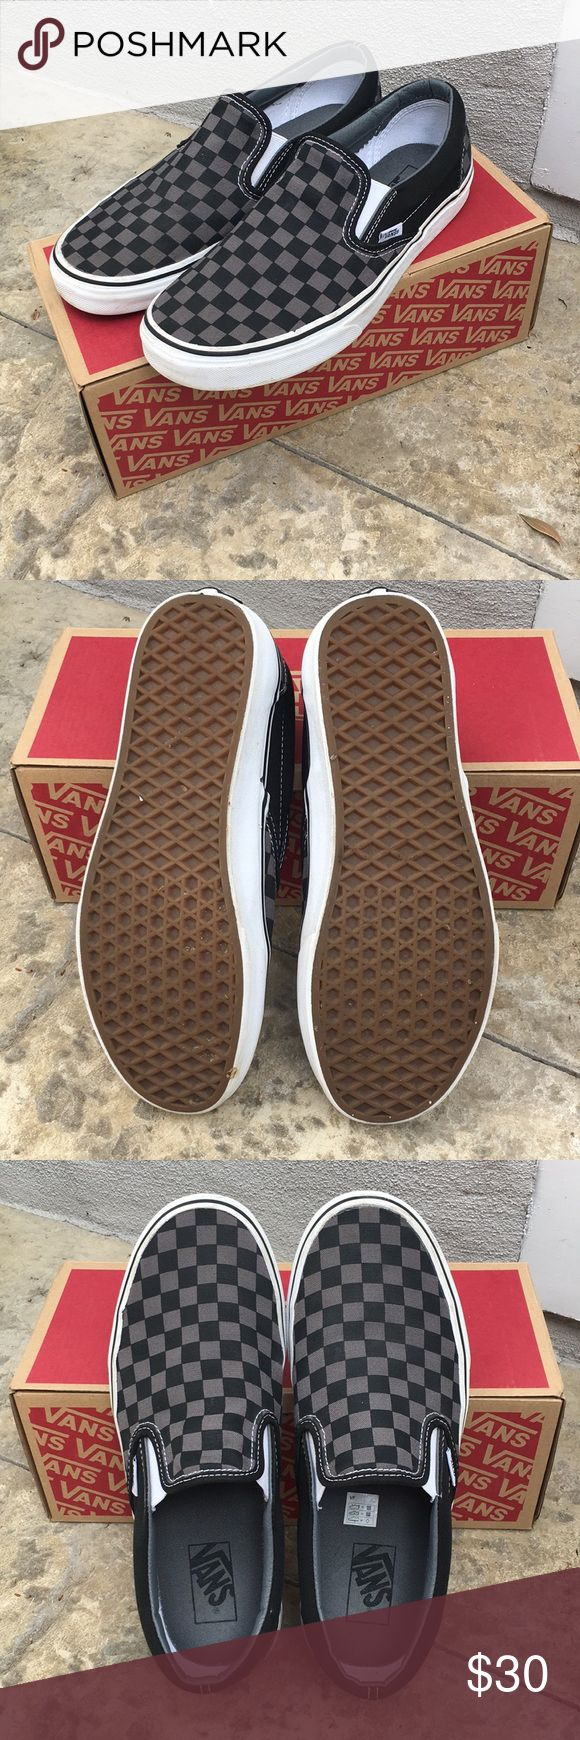 Excellent condition! Men's Vans check slip-ons Excellent condition! Men's Vans check slip-ons. Black & pewter checkered canvas upper with seamless toe. Comes from a smoke free home. Vans Shoes Sneakers #sneakersvans